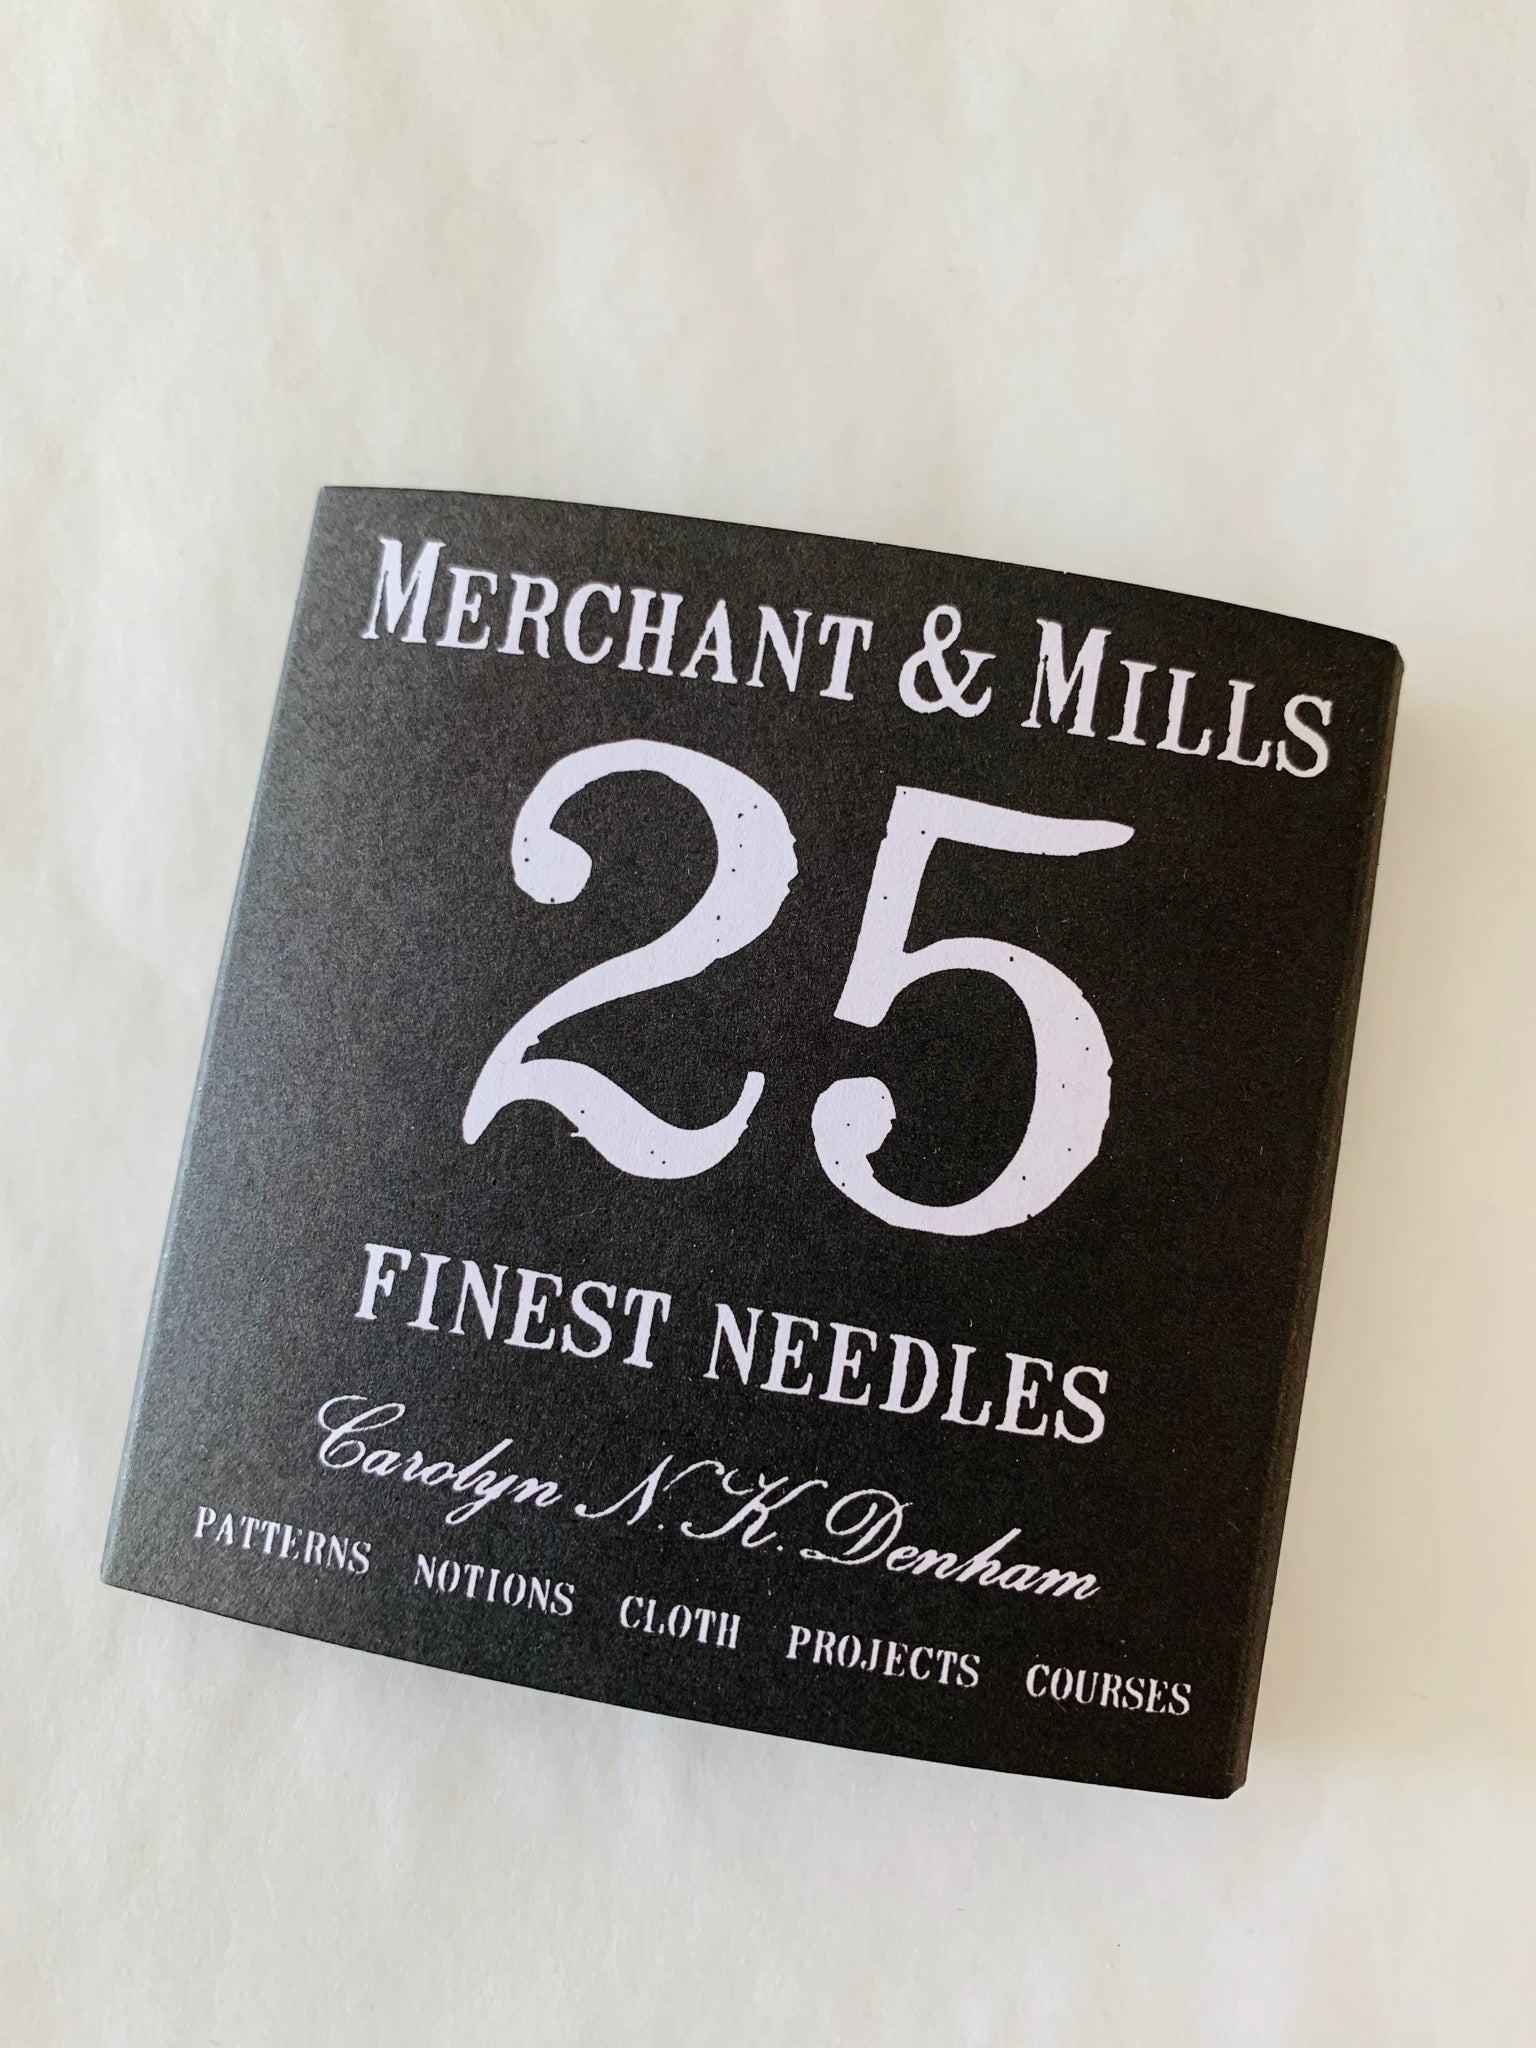 Merchant and Mills 25 Finest Needles